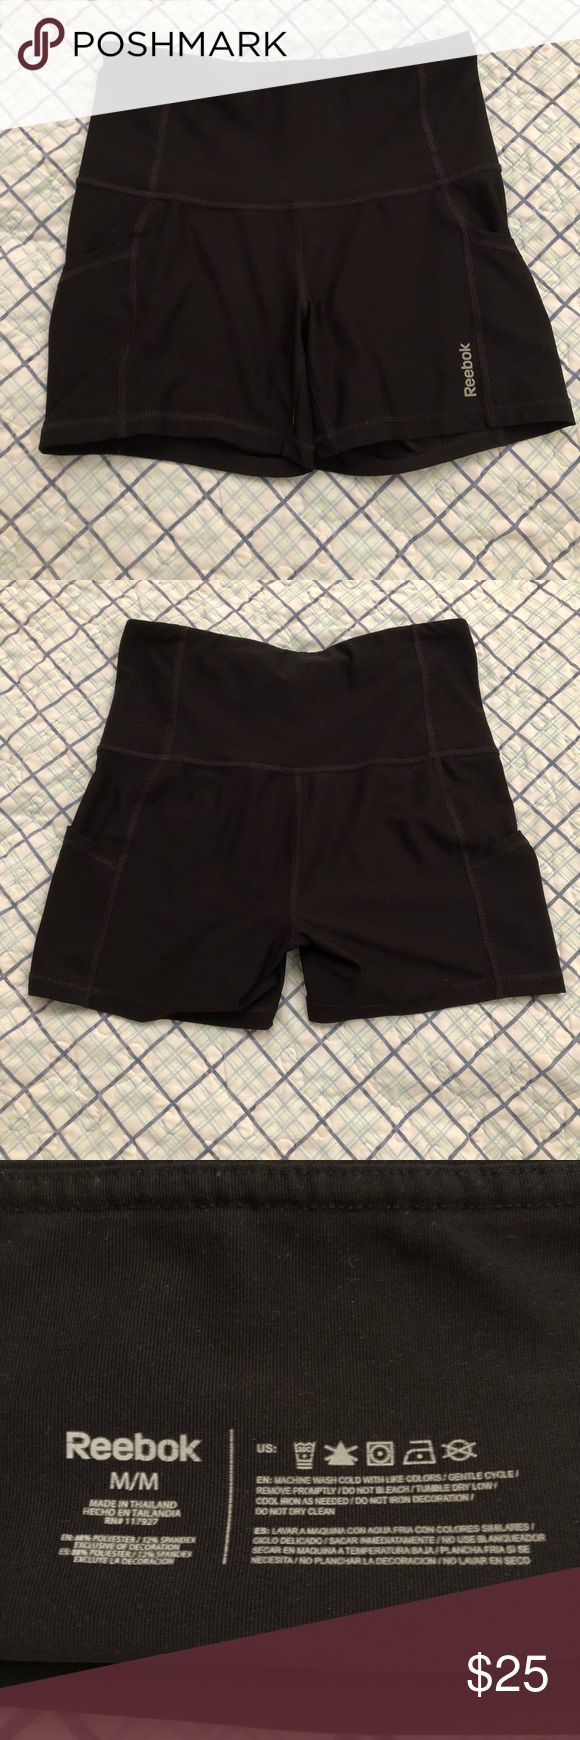 Reebok Medium Black Spanx Black Redbox spanx, size medium with a high waist and pockets on both sides. The pockets are deep and securely hold my phone with a case on it. Never had much of an issue with them riding up while I workout. Great condition! Reebok Shorts